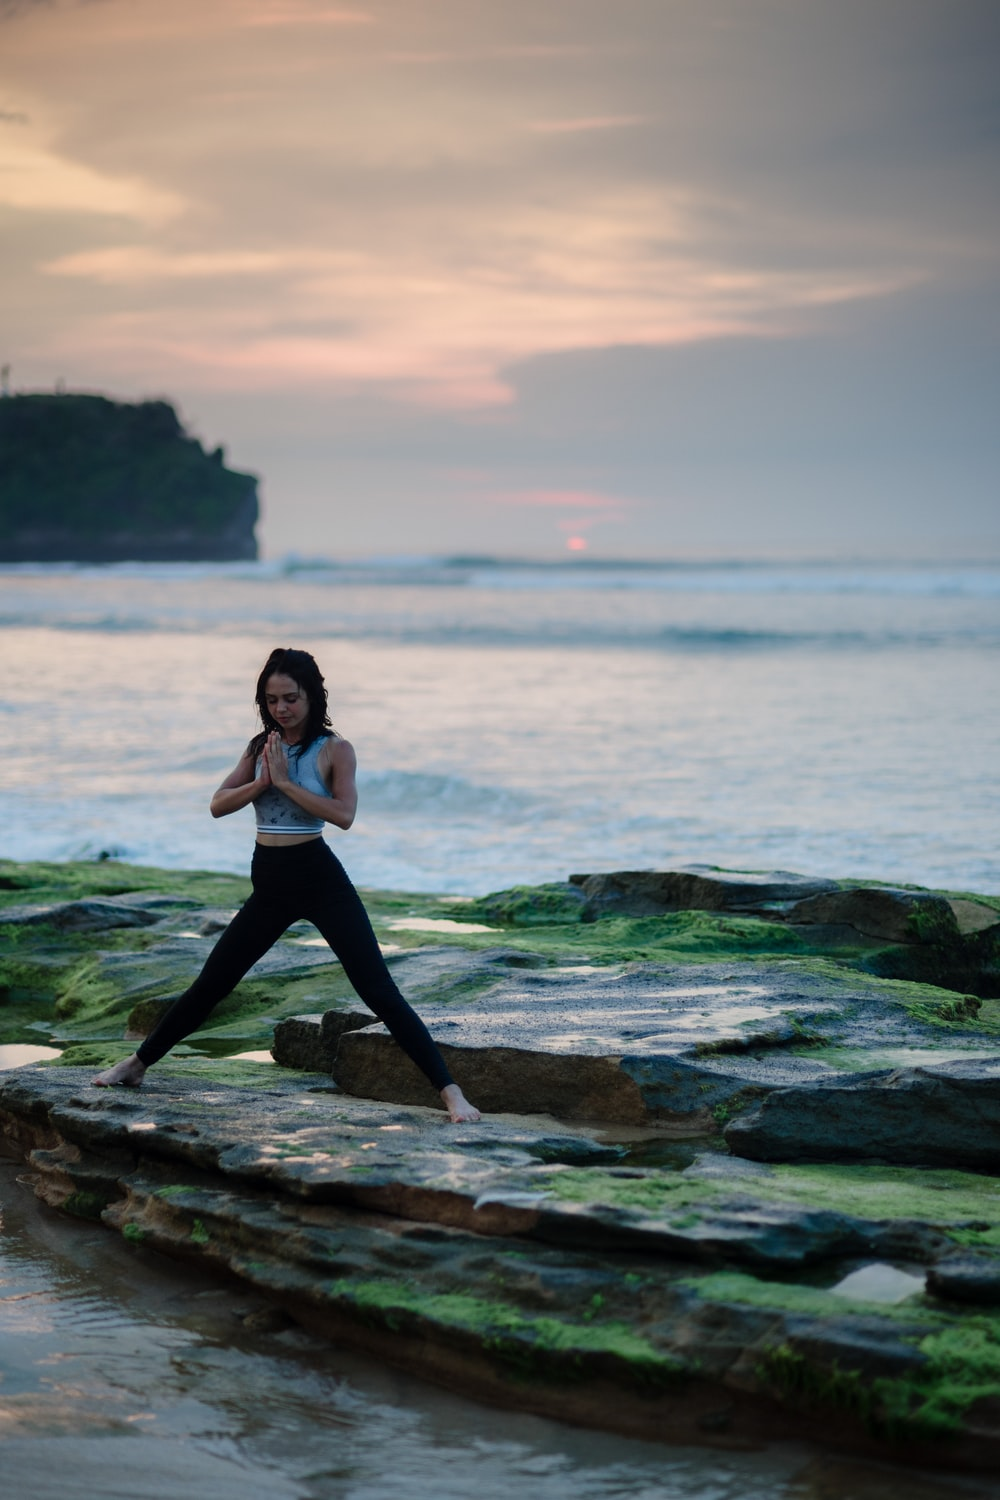 woman doing yoga on rock platform next to body of water